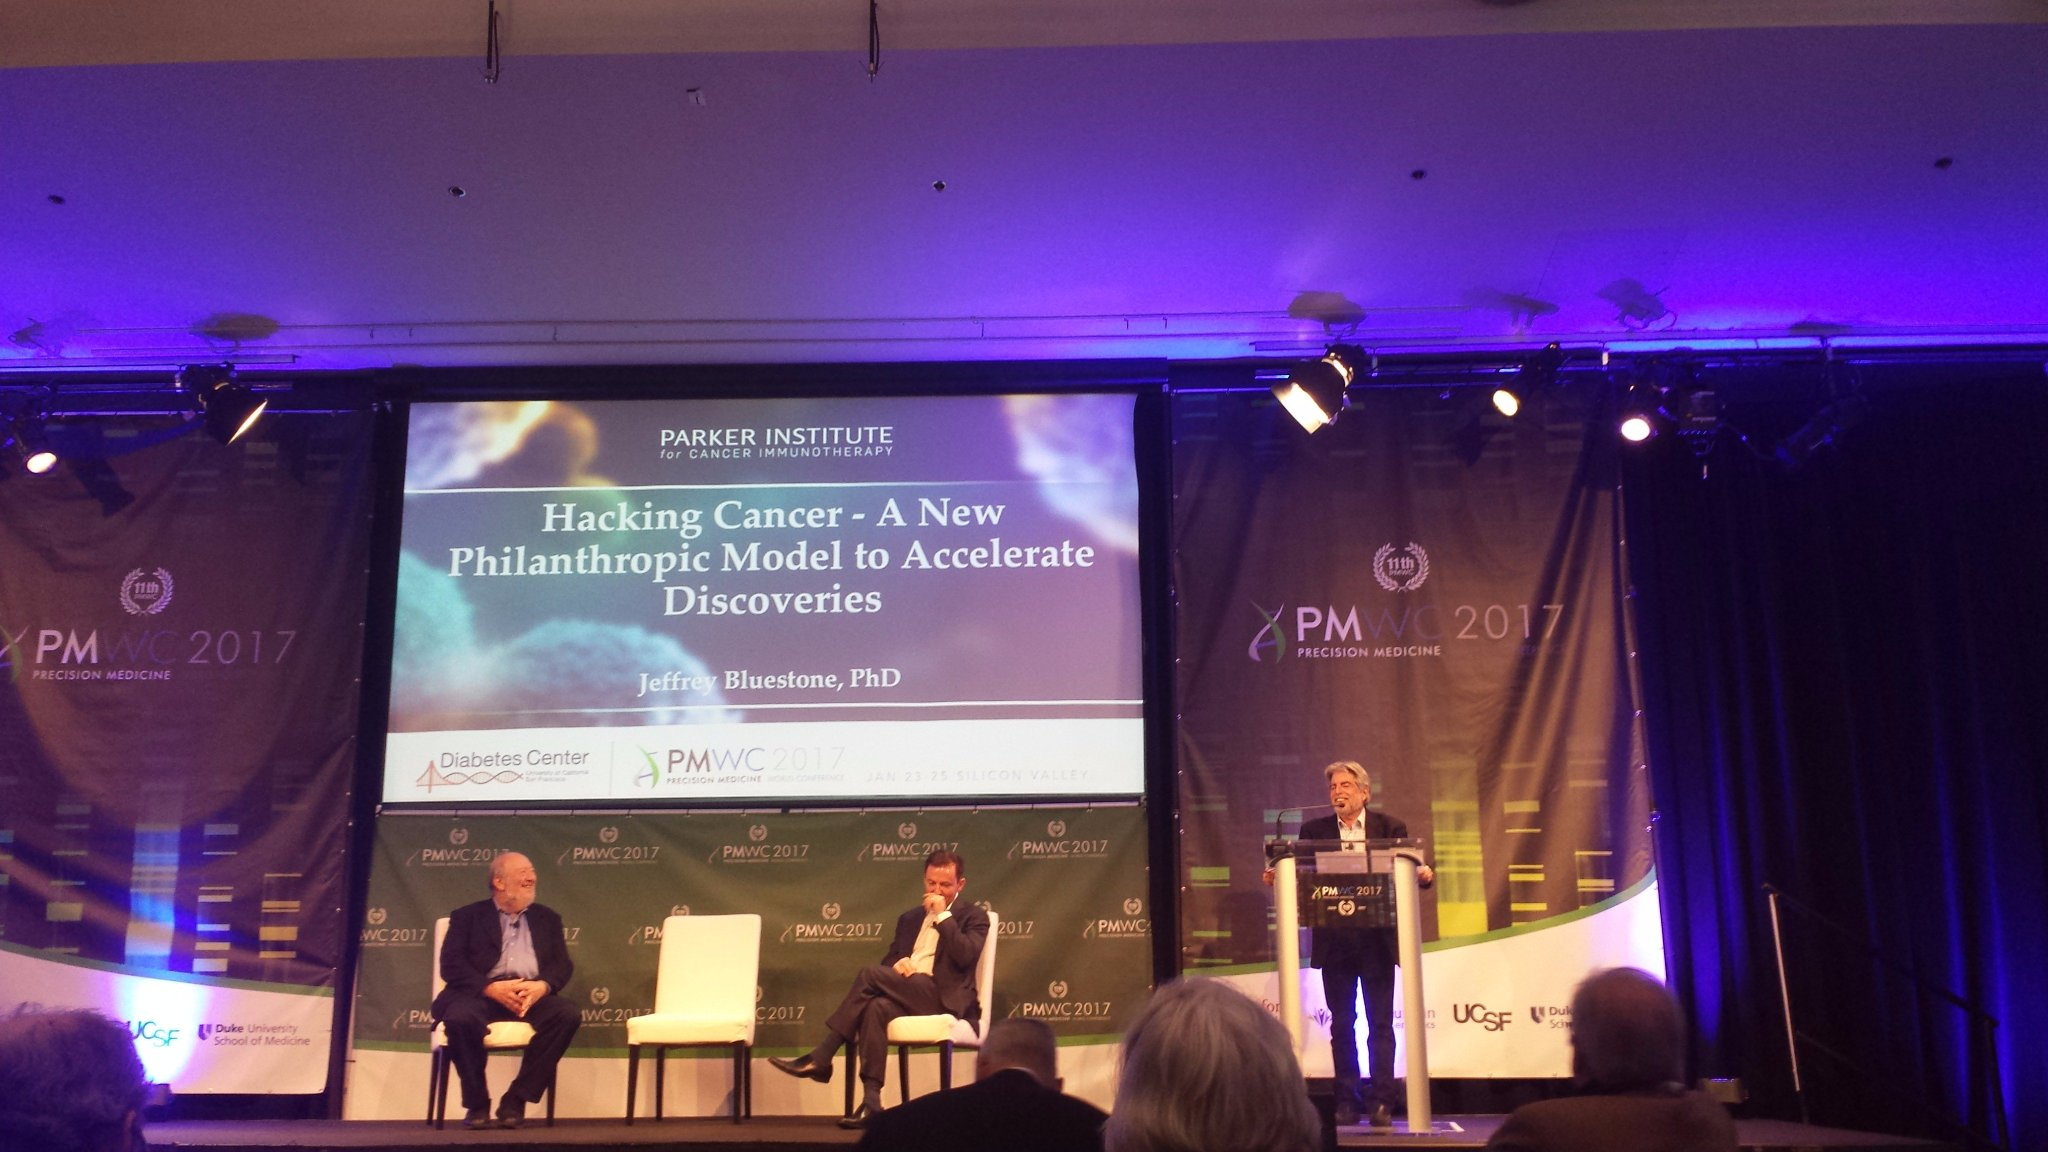 I'm here to tell you how #immunotherapy has exploded, changed how we treating cancer, organize around it -Jeff Bluestone, PICI CEO #PMWC17 https://t.co/VkAt2bPUM6